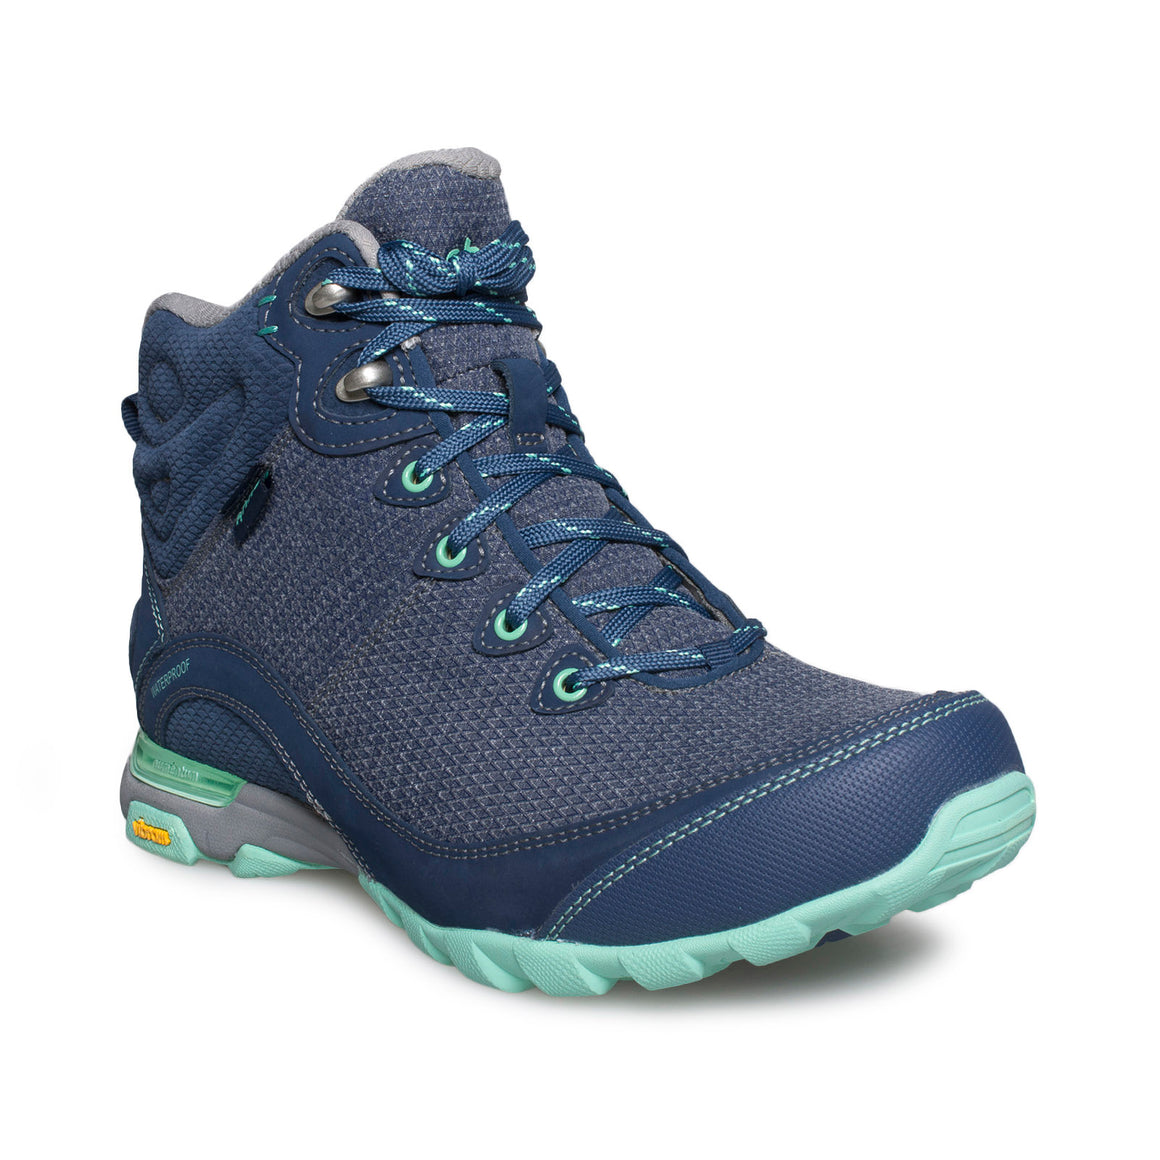 AHNU Sugarpine II Waterproof Insignia Blue Boots - Women's